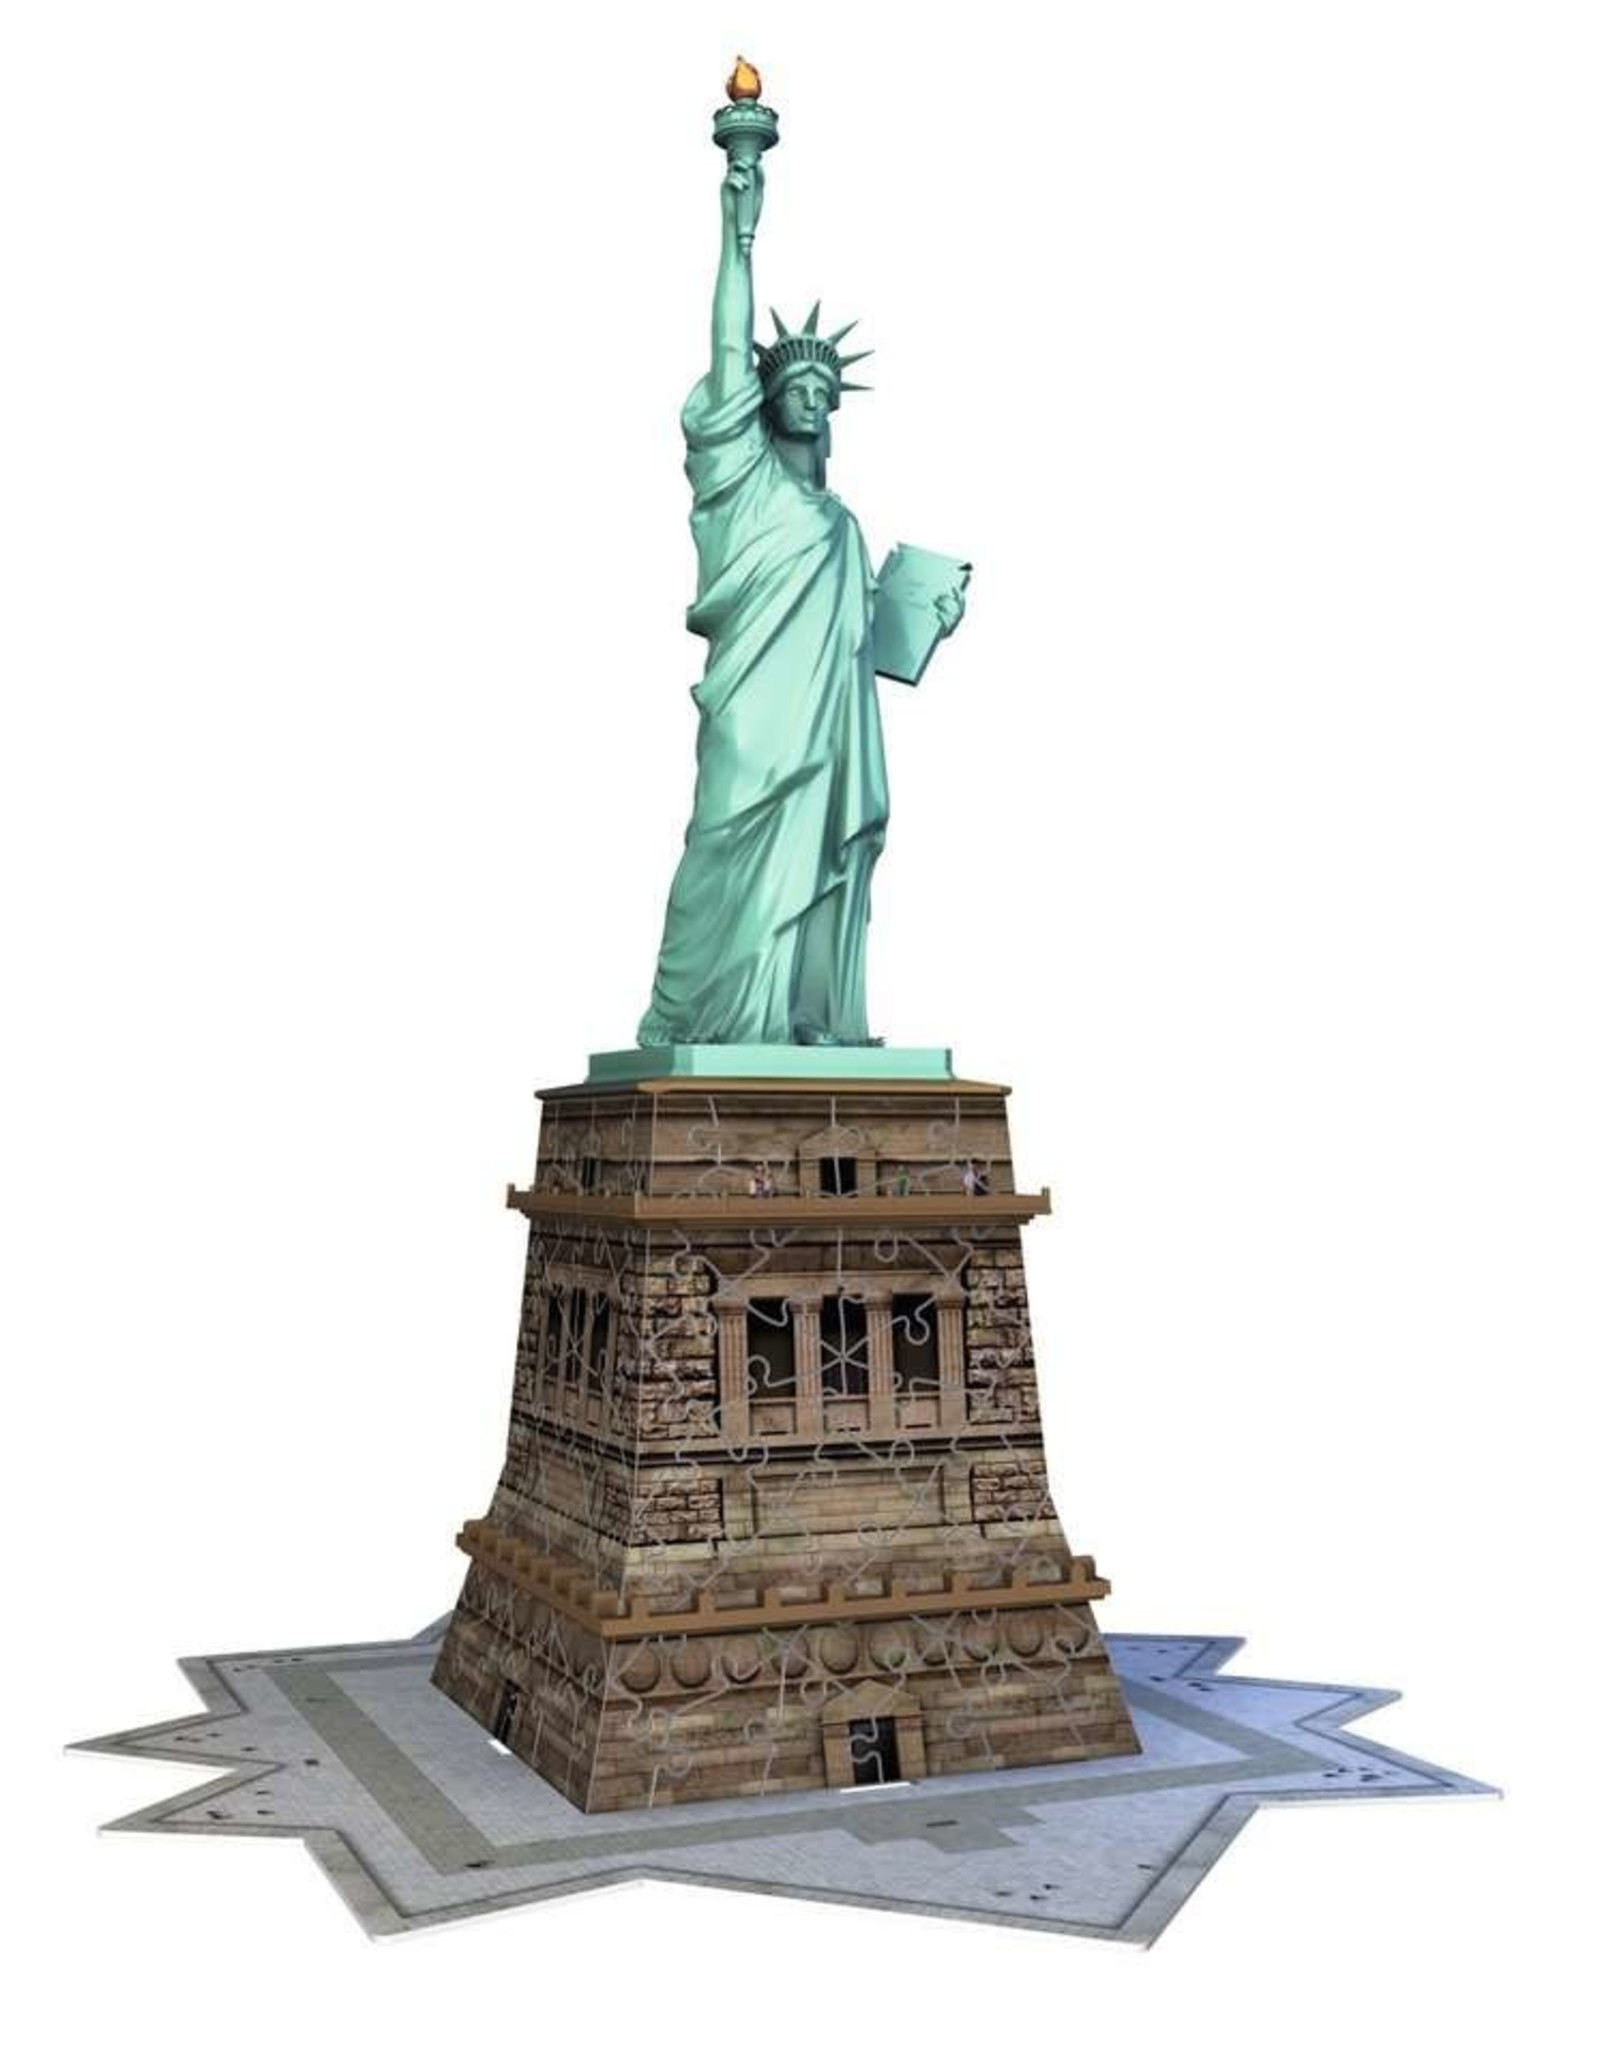 Ravensburger Puzzle: Statue of Liberty (108 pc)